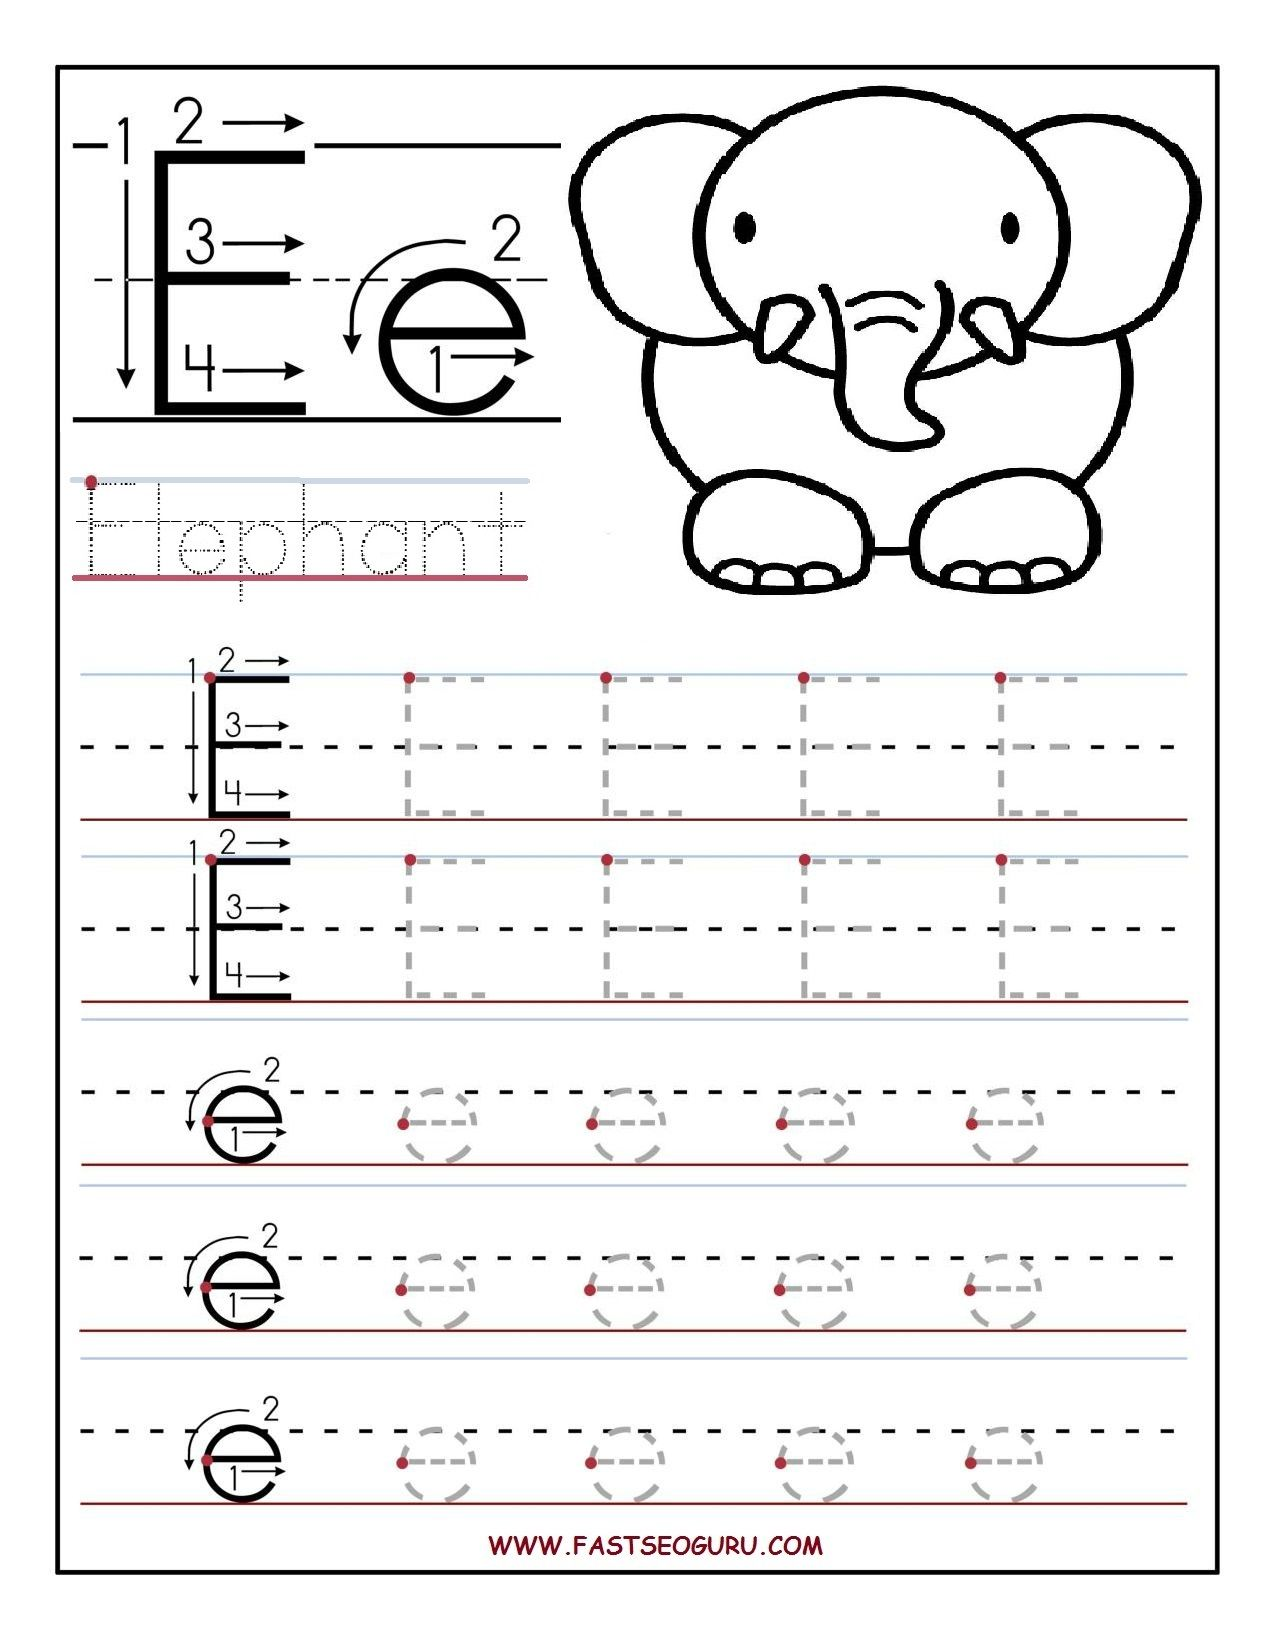 printable letter e tracing worksheets for preschool preschool pinterest tracing worksheets. Black Bedroom Furniture Sets. Home Design Ideas